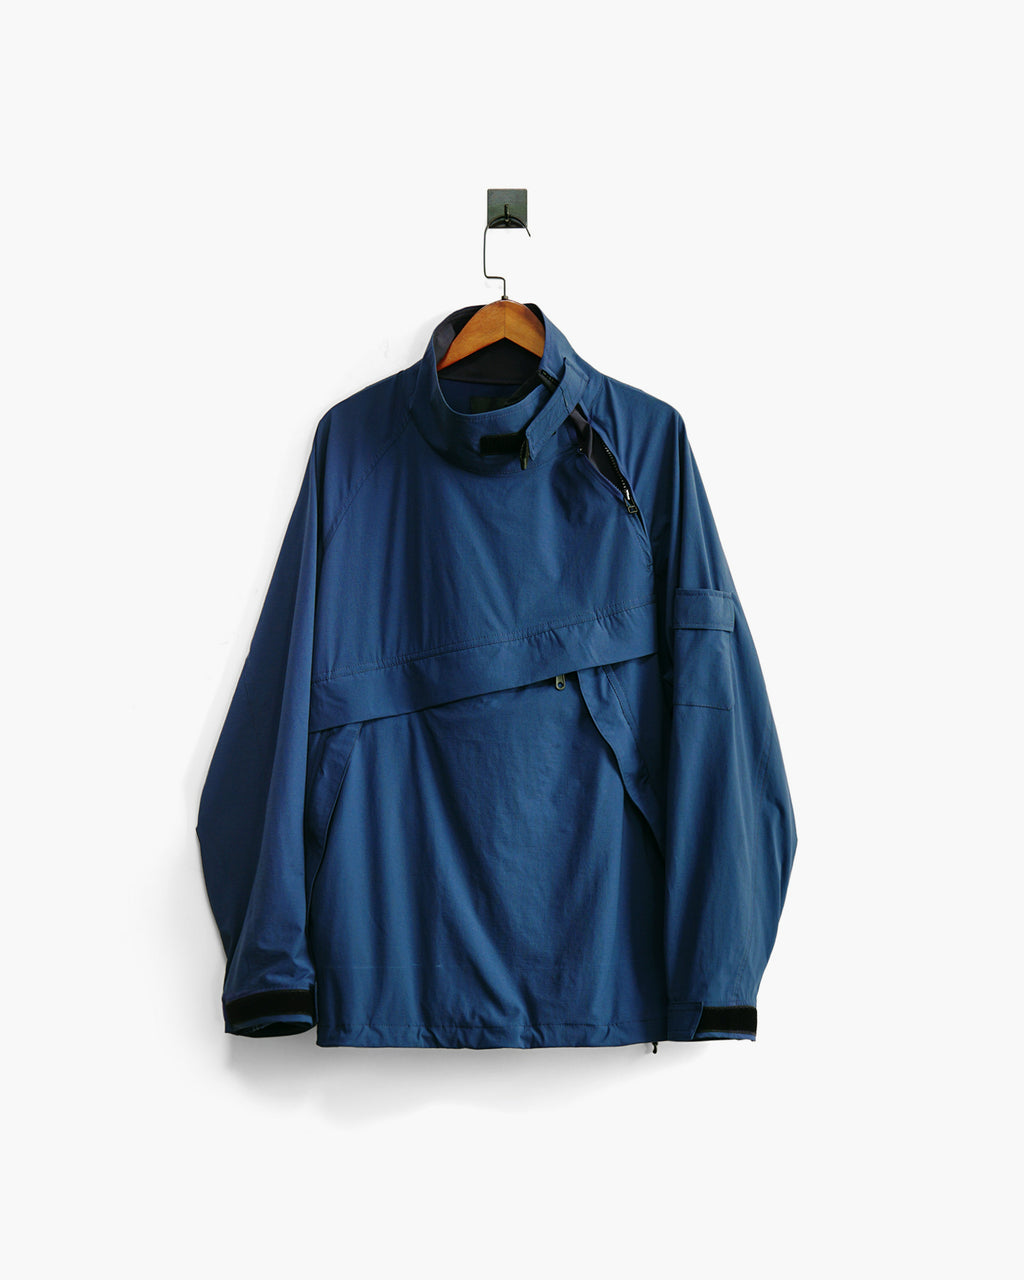 ROSEN-X Orion Anorak in Ripstop Nylon Sz 2